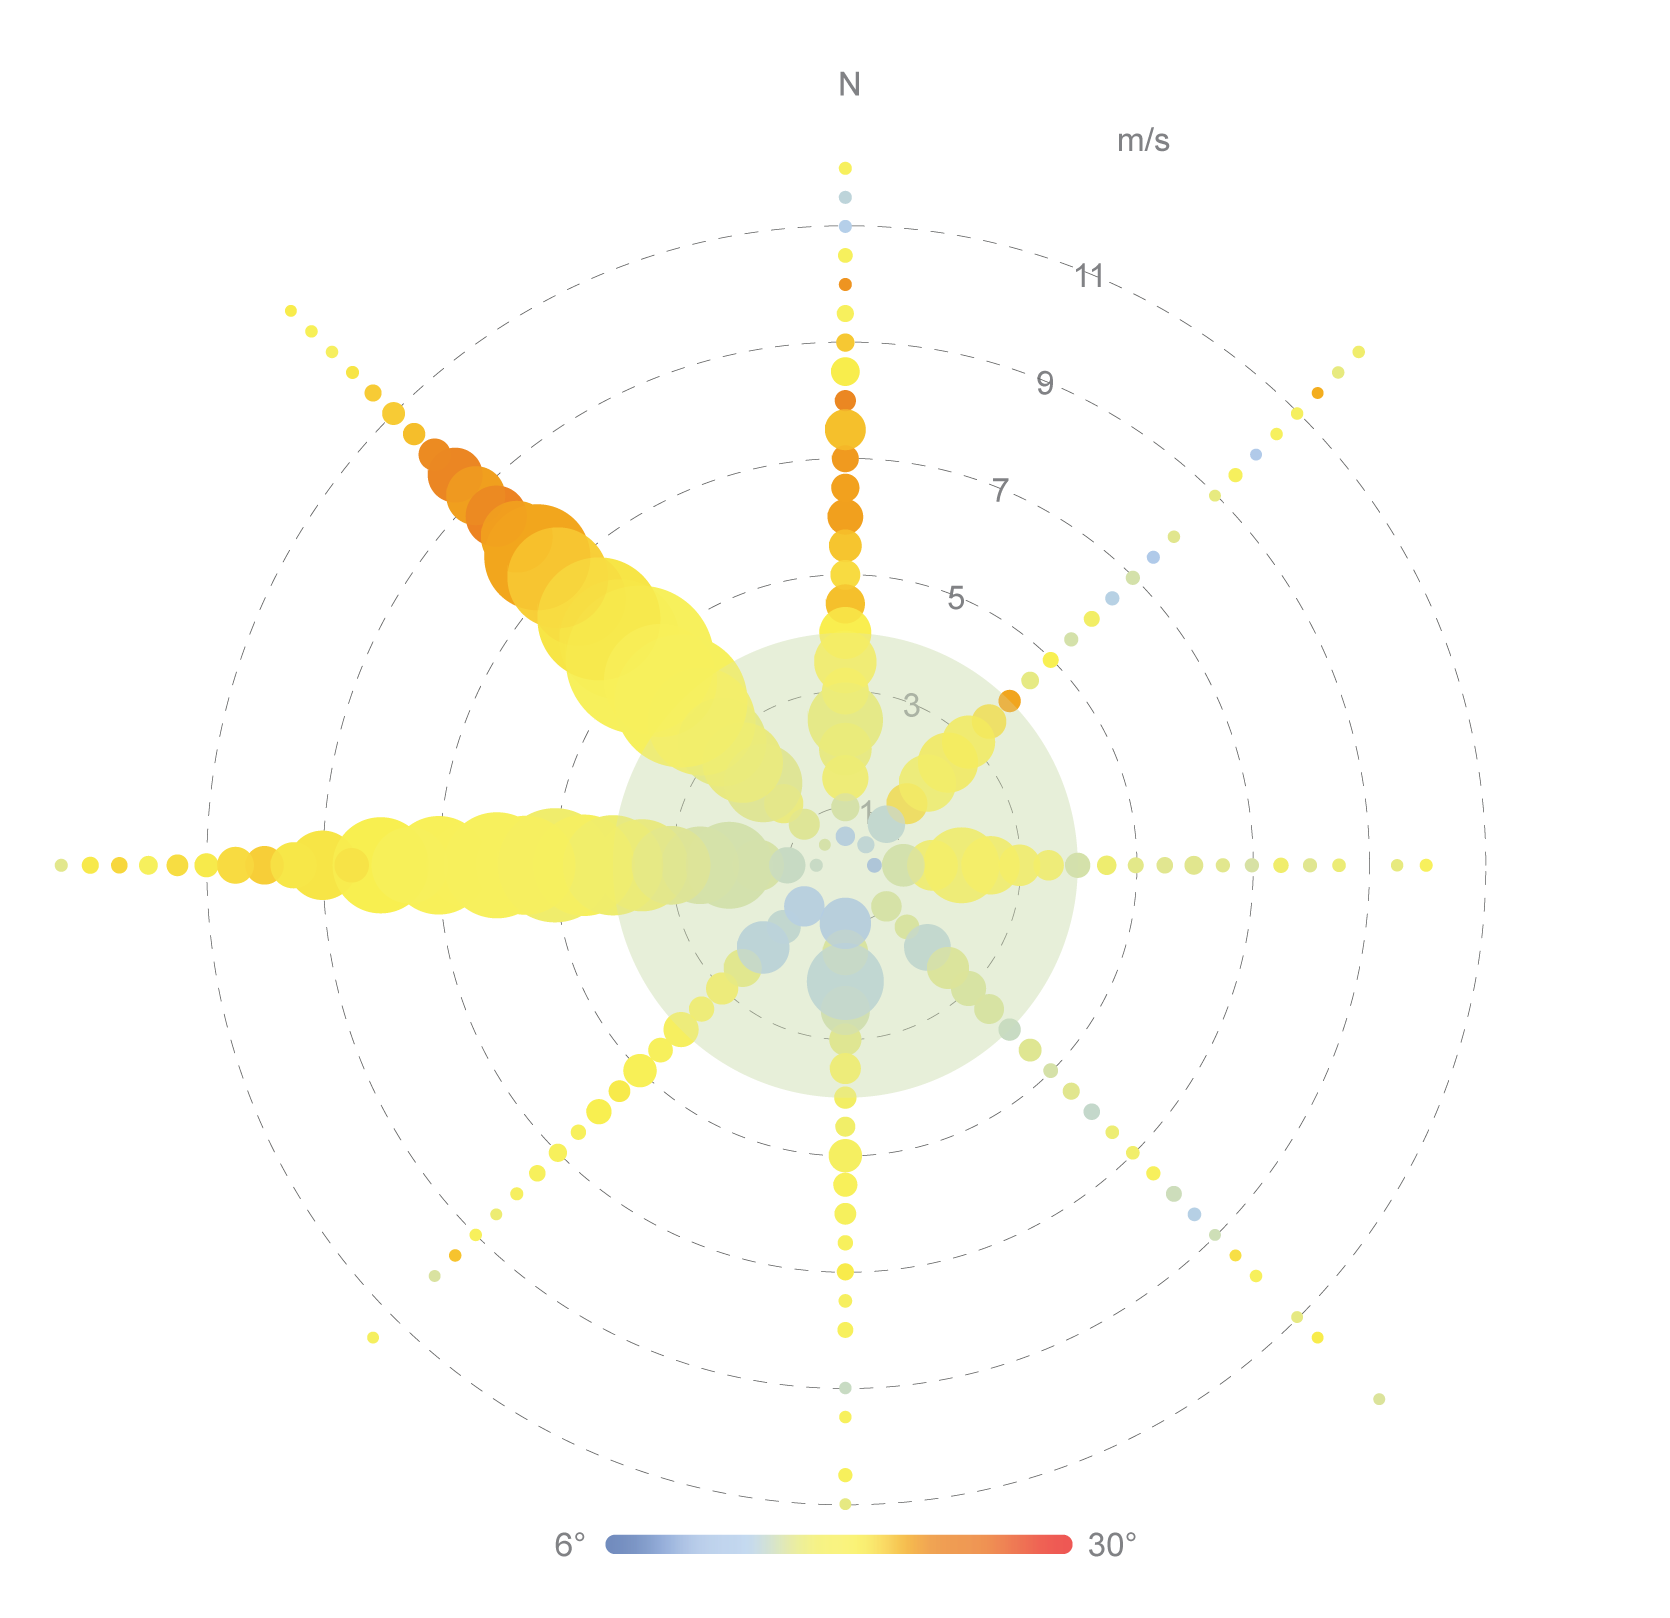 Visualization of site's wind conditions that shows temperature, speed, direction, and frequency.